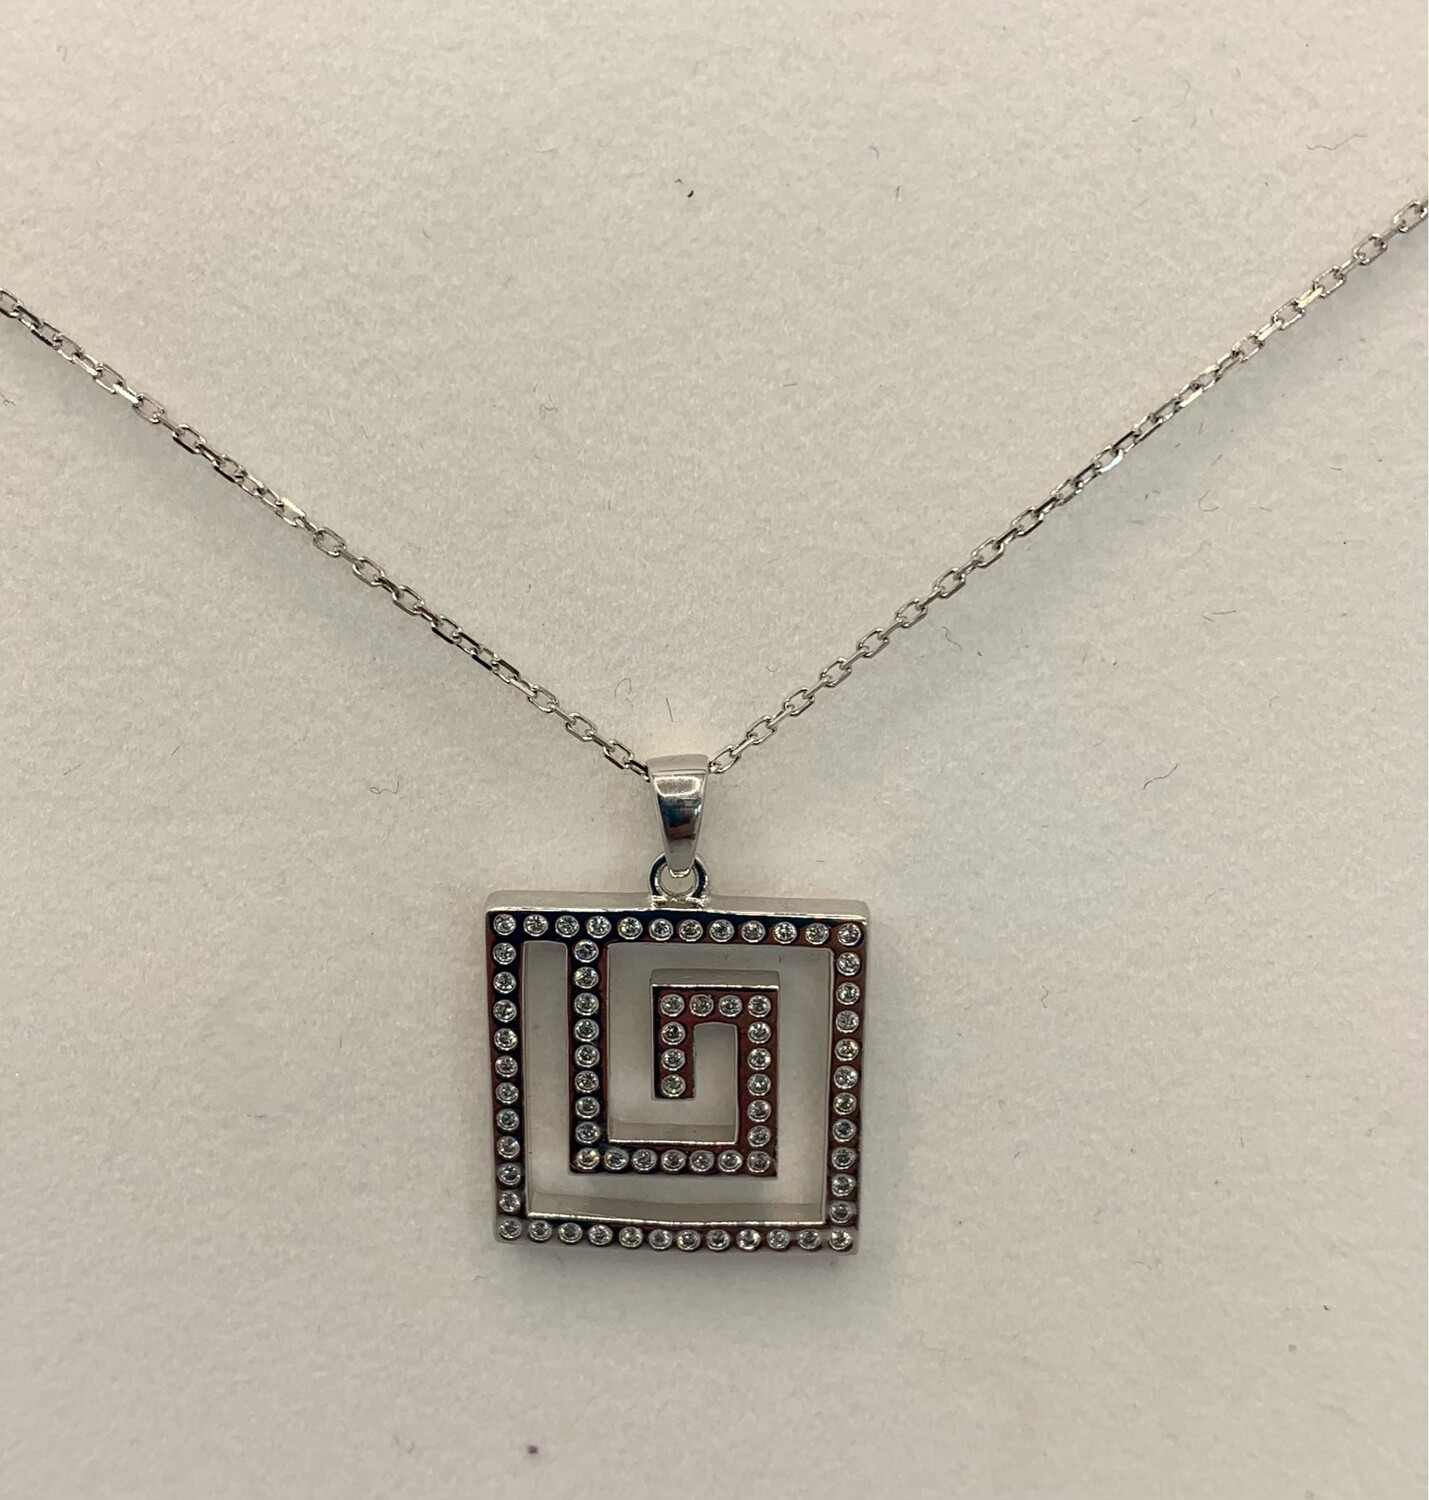 Geometric Square Sterling Silver Pendant With Lobster Claw Closure